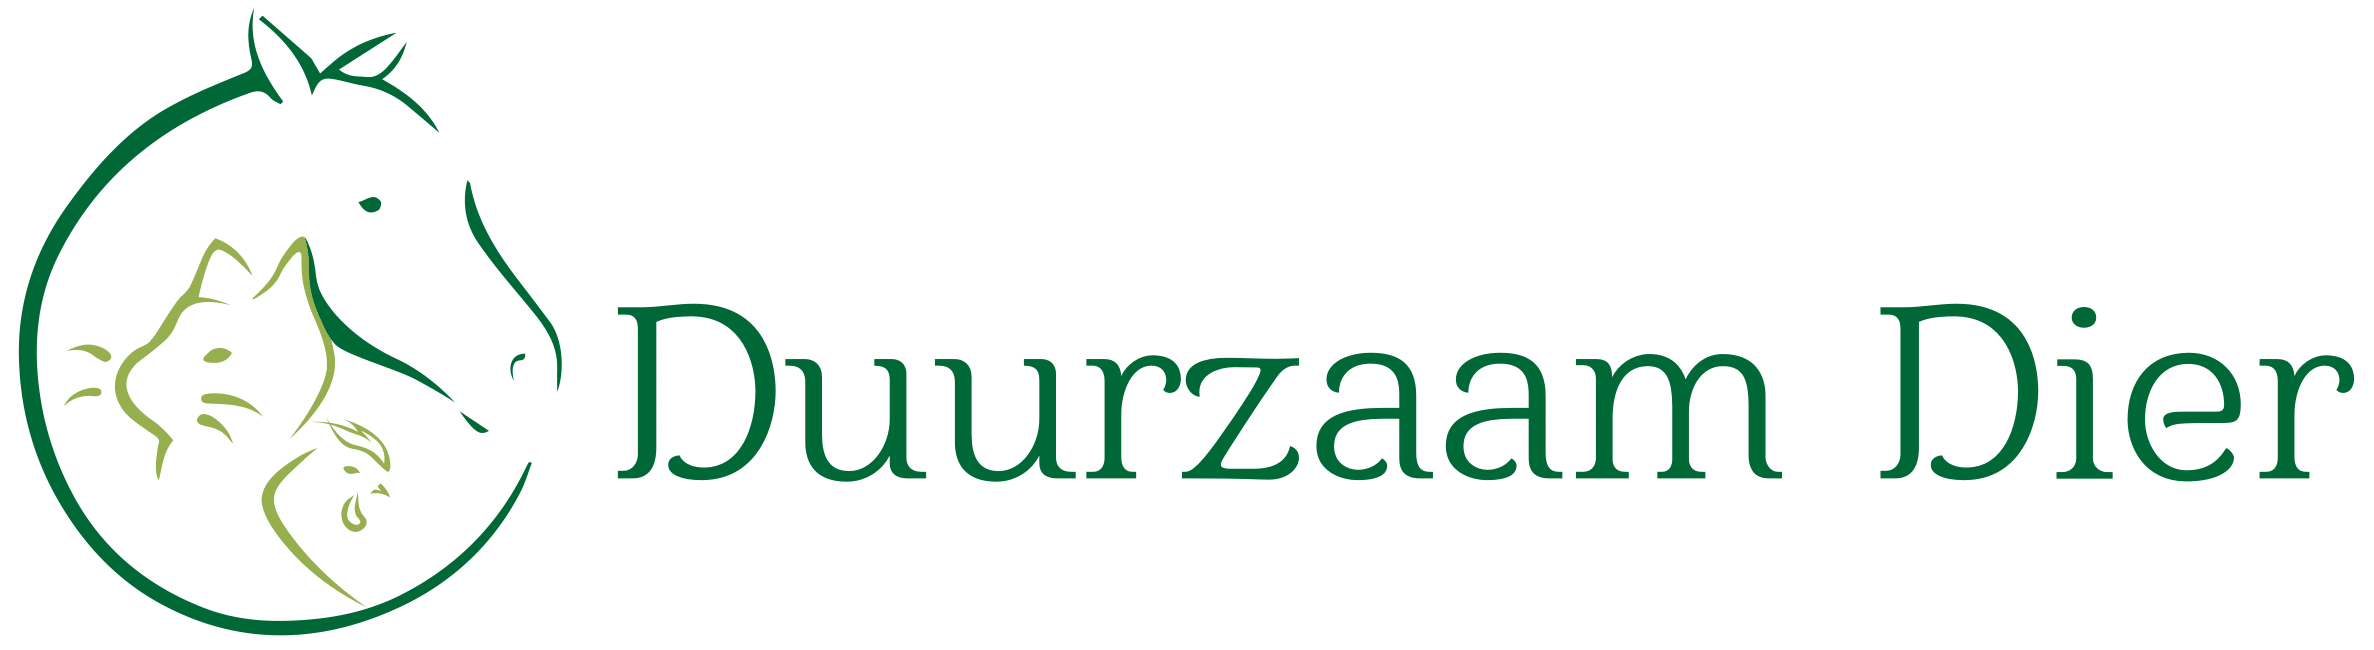 logo duurzaam dier jantine website header